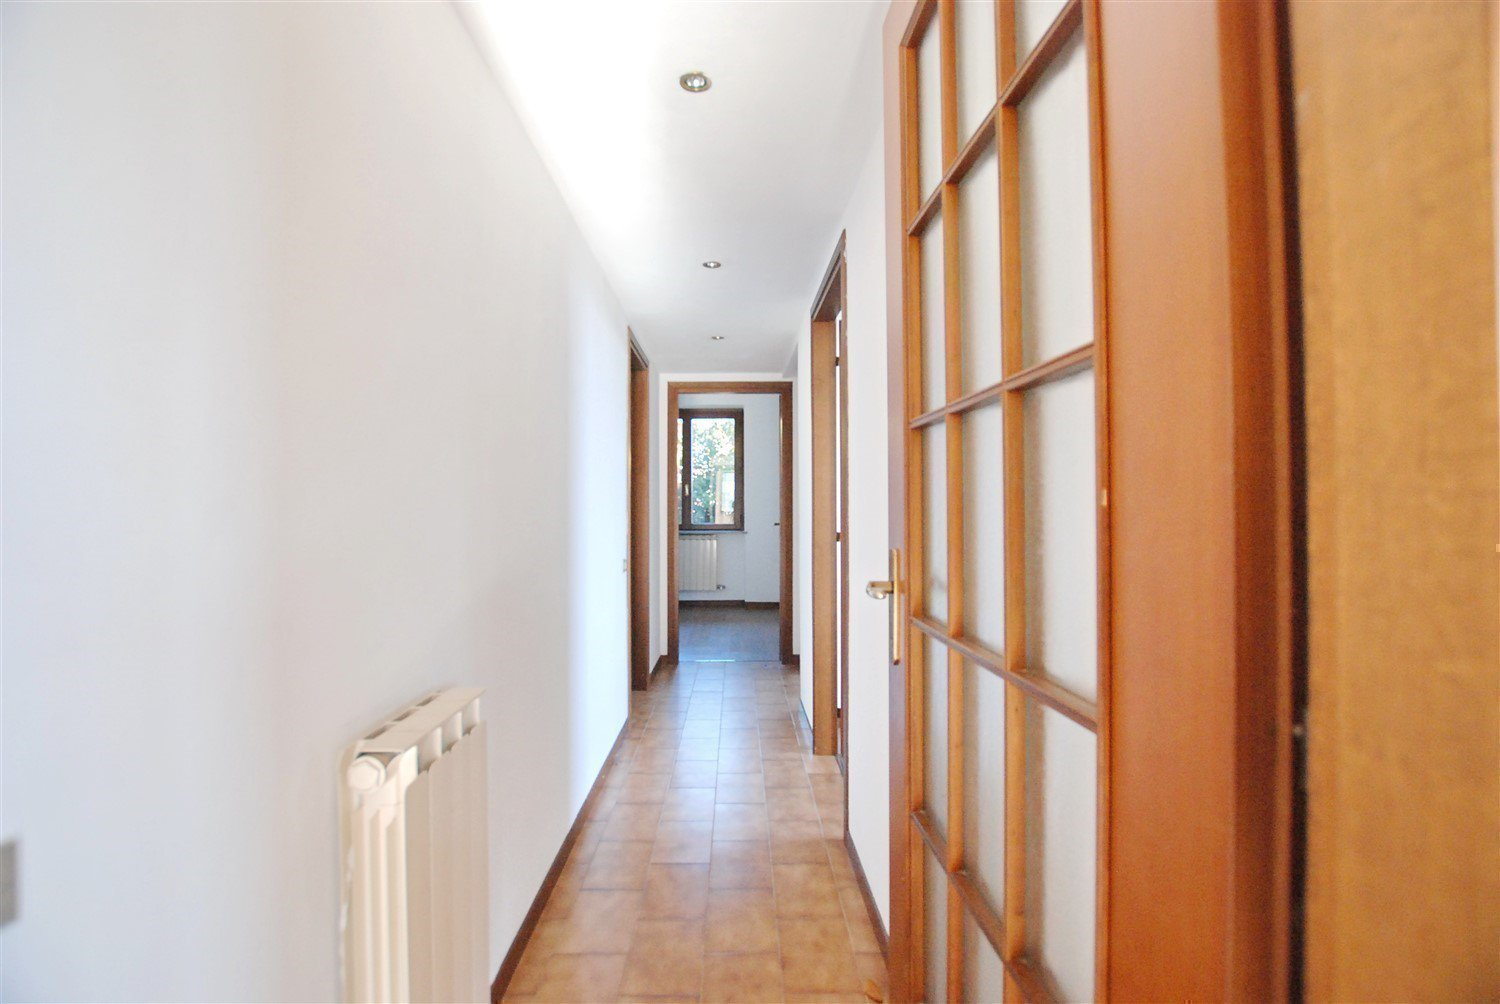 Apartment for sale in Belgirate - hallway